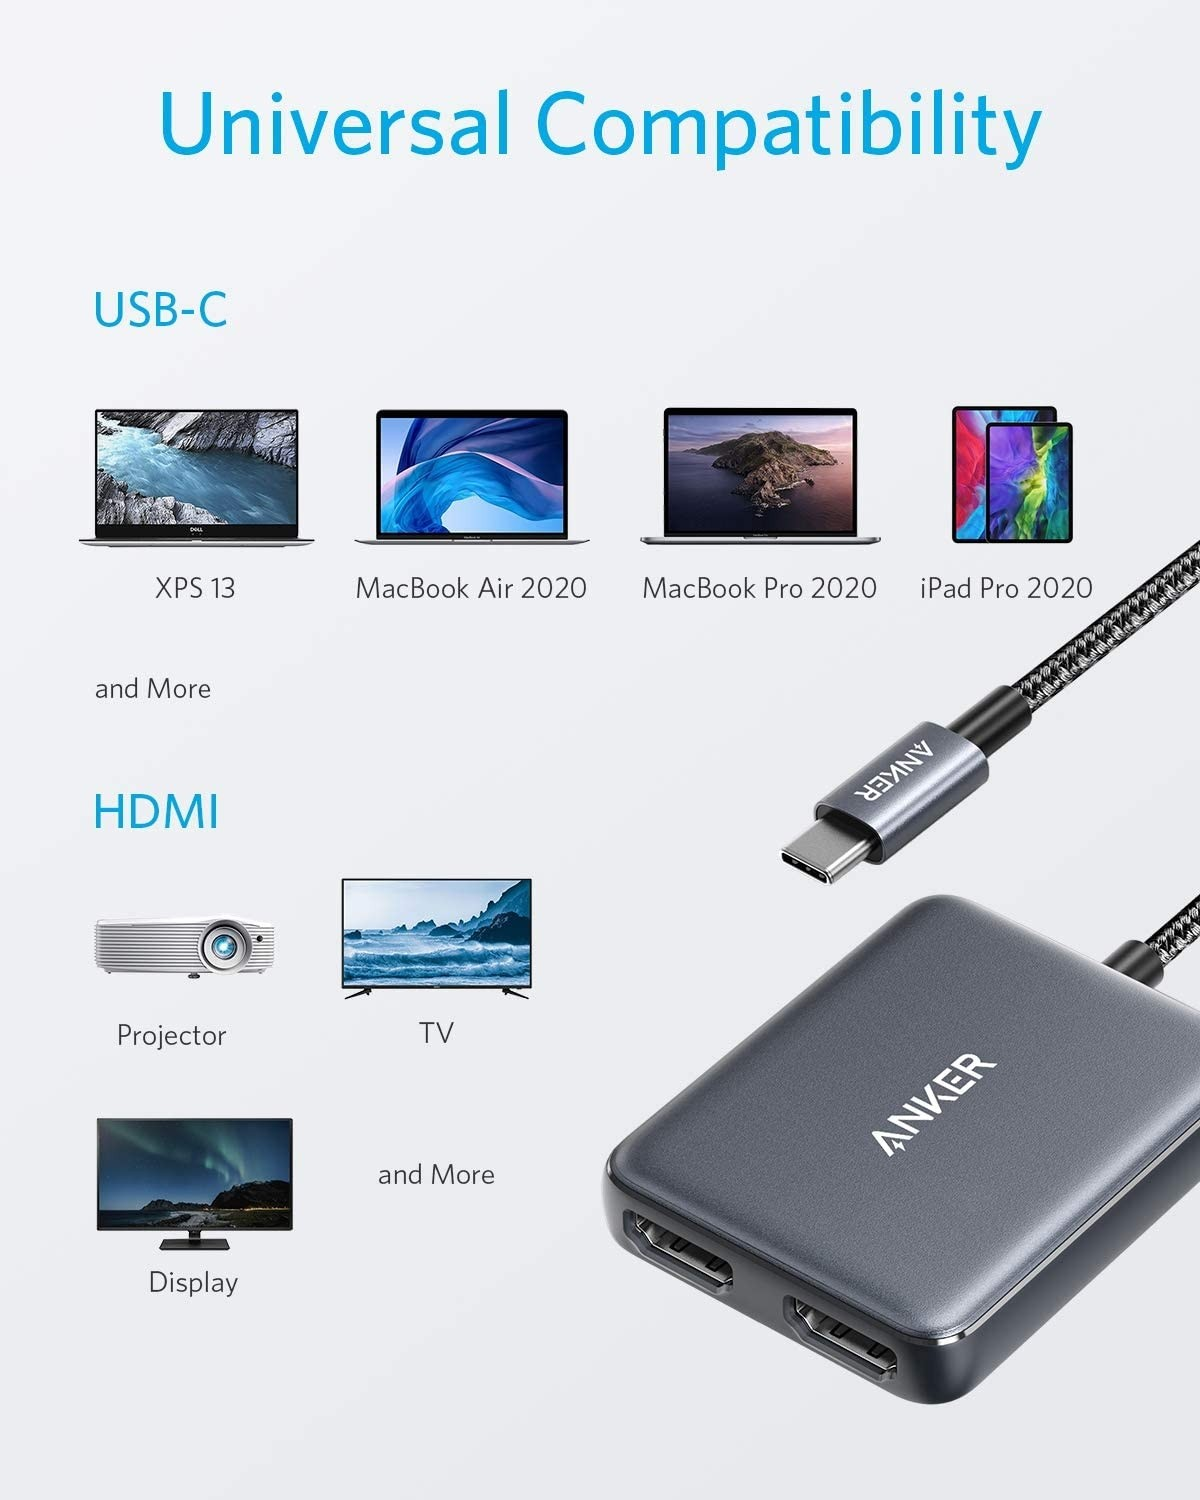 Anker USB C to Dual HDMI Adapter, Compatible with Thunderbolt 3 Ports - Space Grey, A83240A1